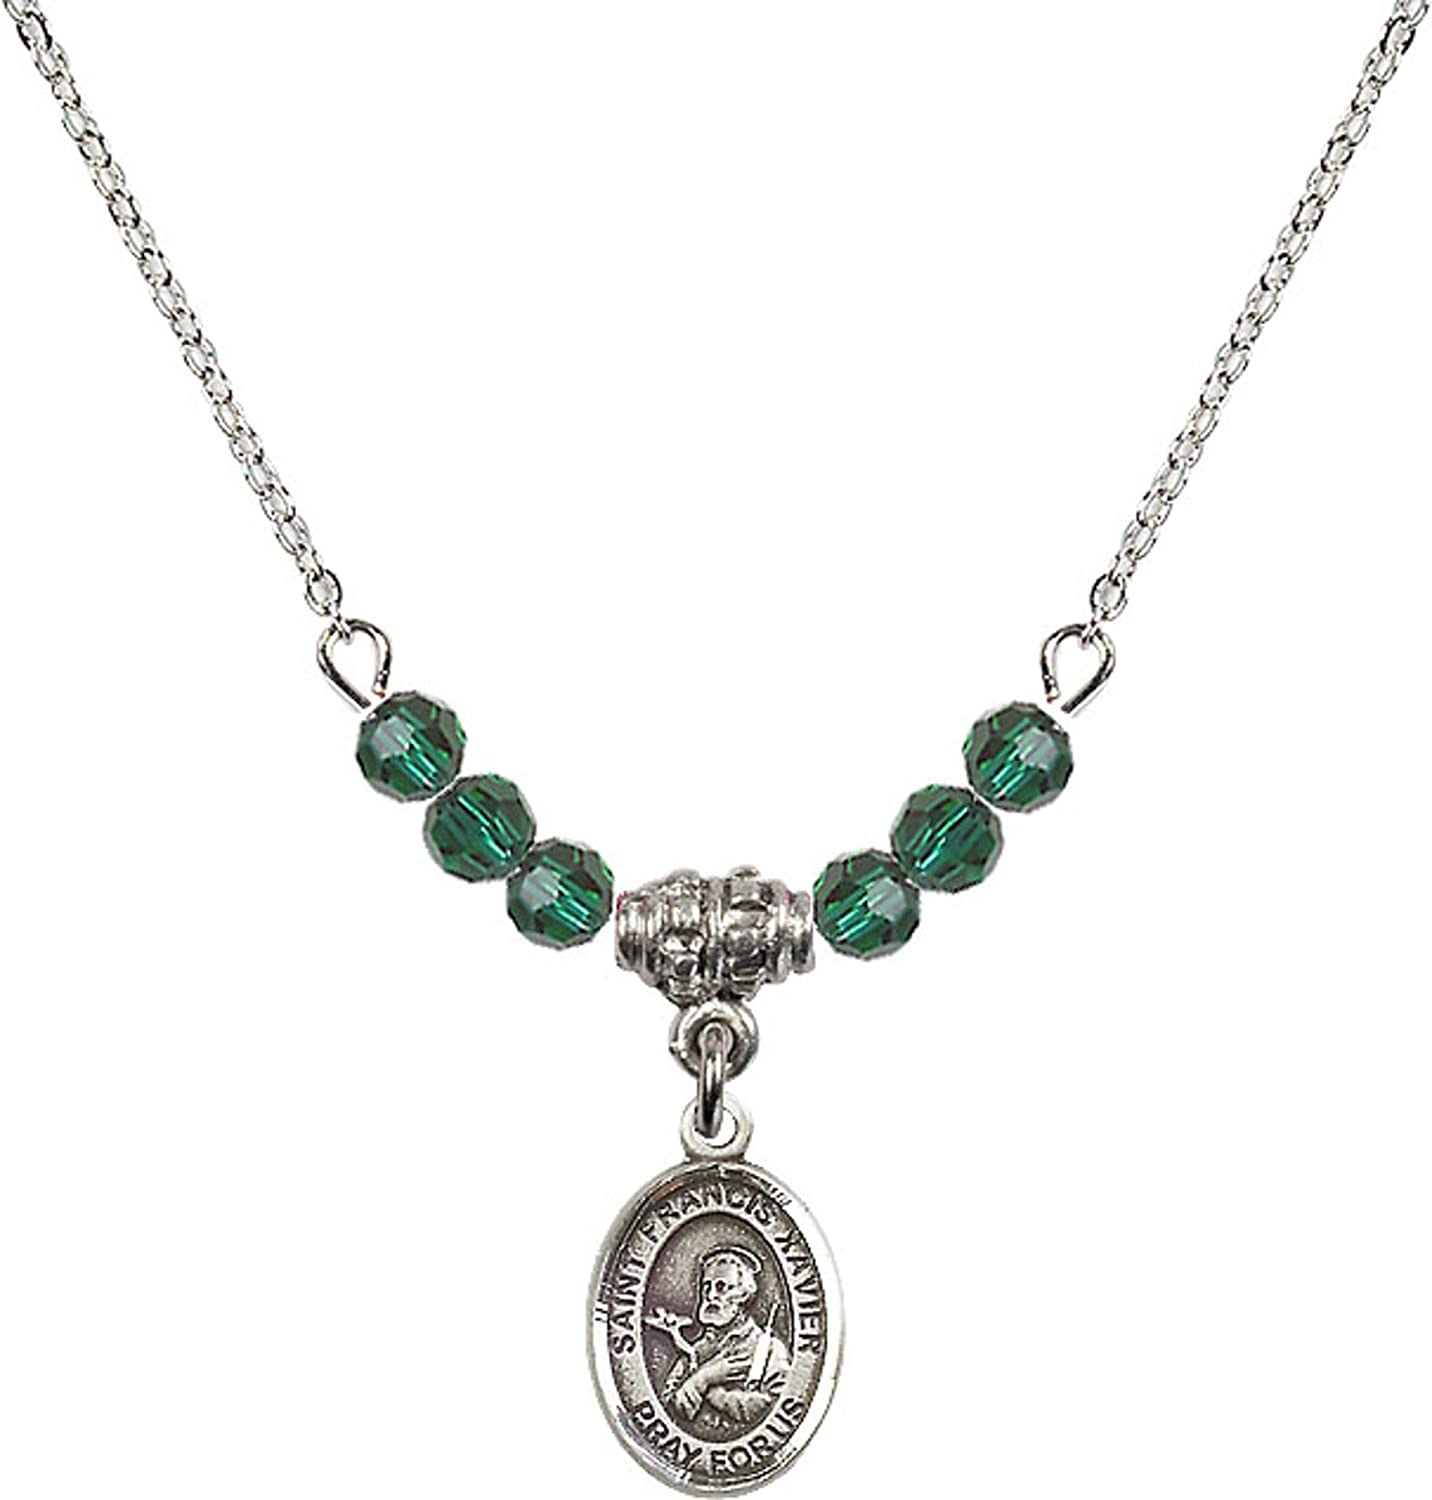 Bonyak Jewelry 18 Inch Rhodium Plated Necklace w// 4mm Green May Birth Month Stone Beads and Saint Francis Xavier Charm